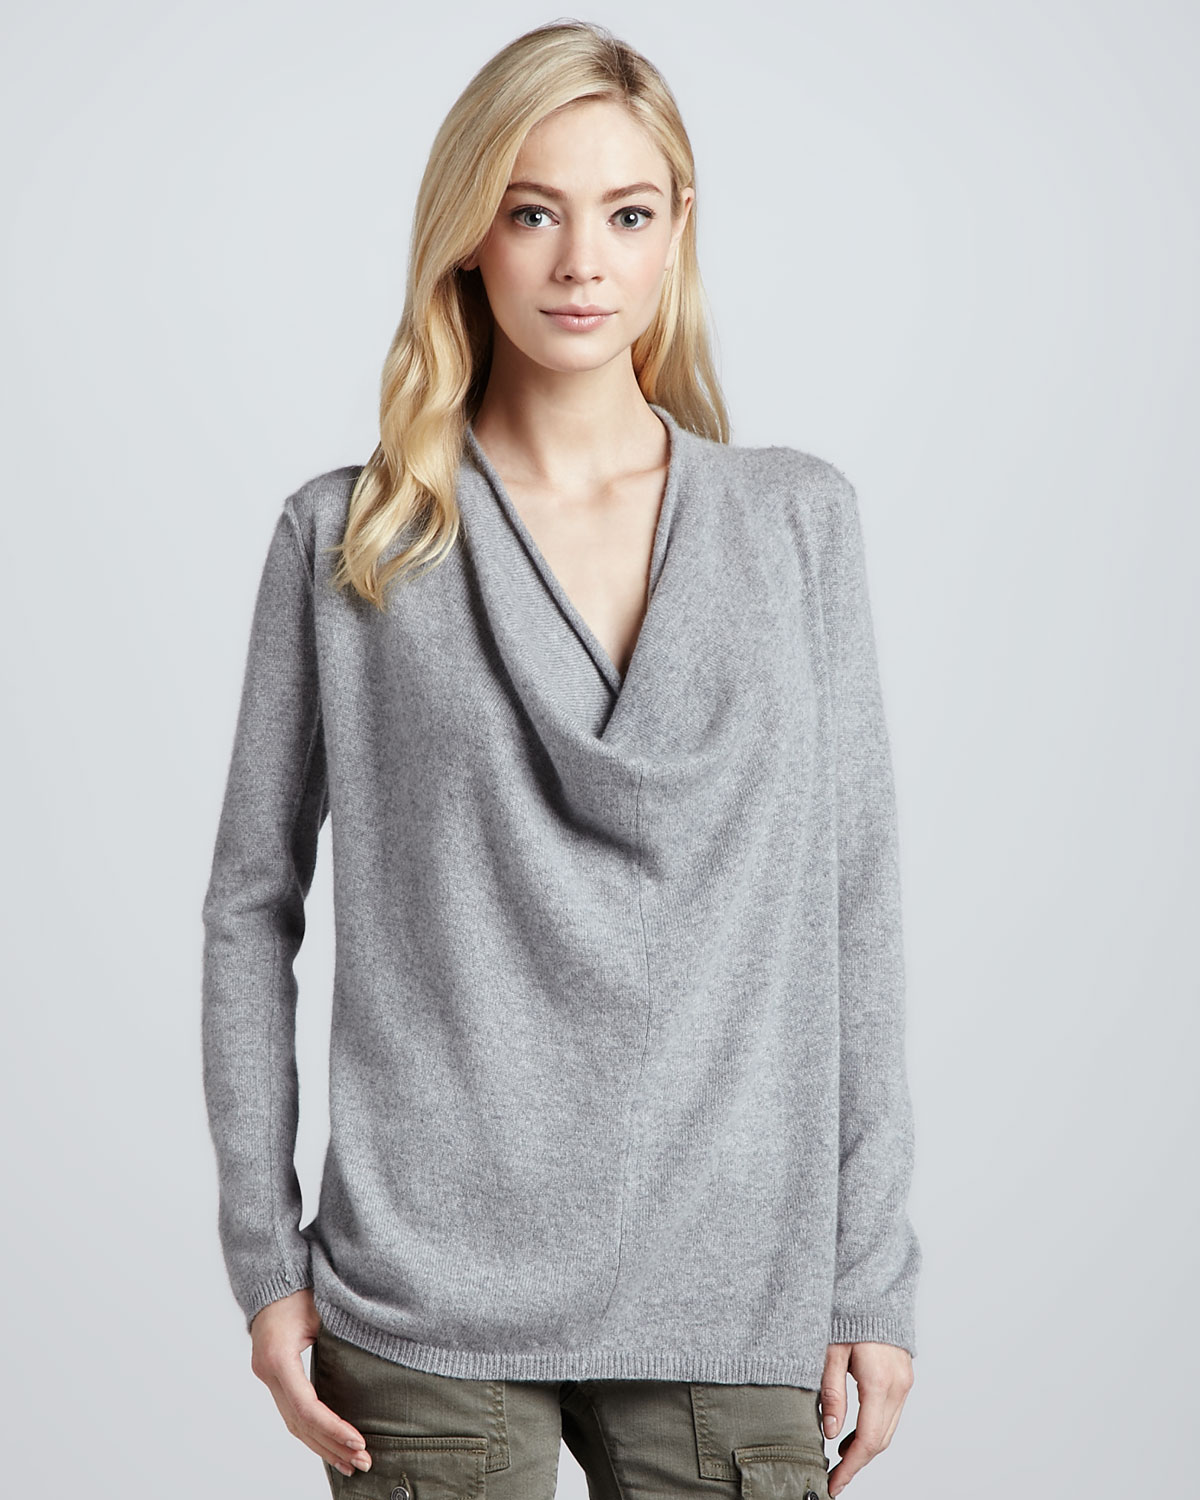 Joie Cowlneck Cashmere Sweater in Gray | Lyst